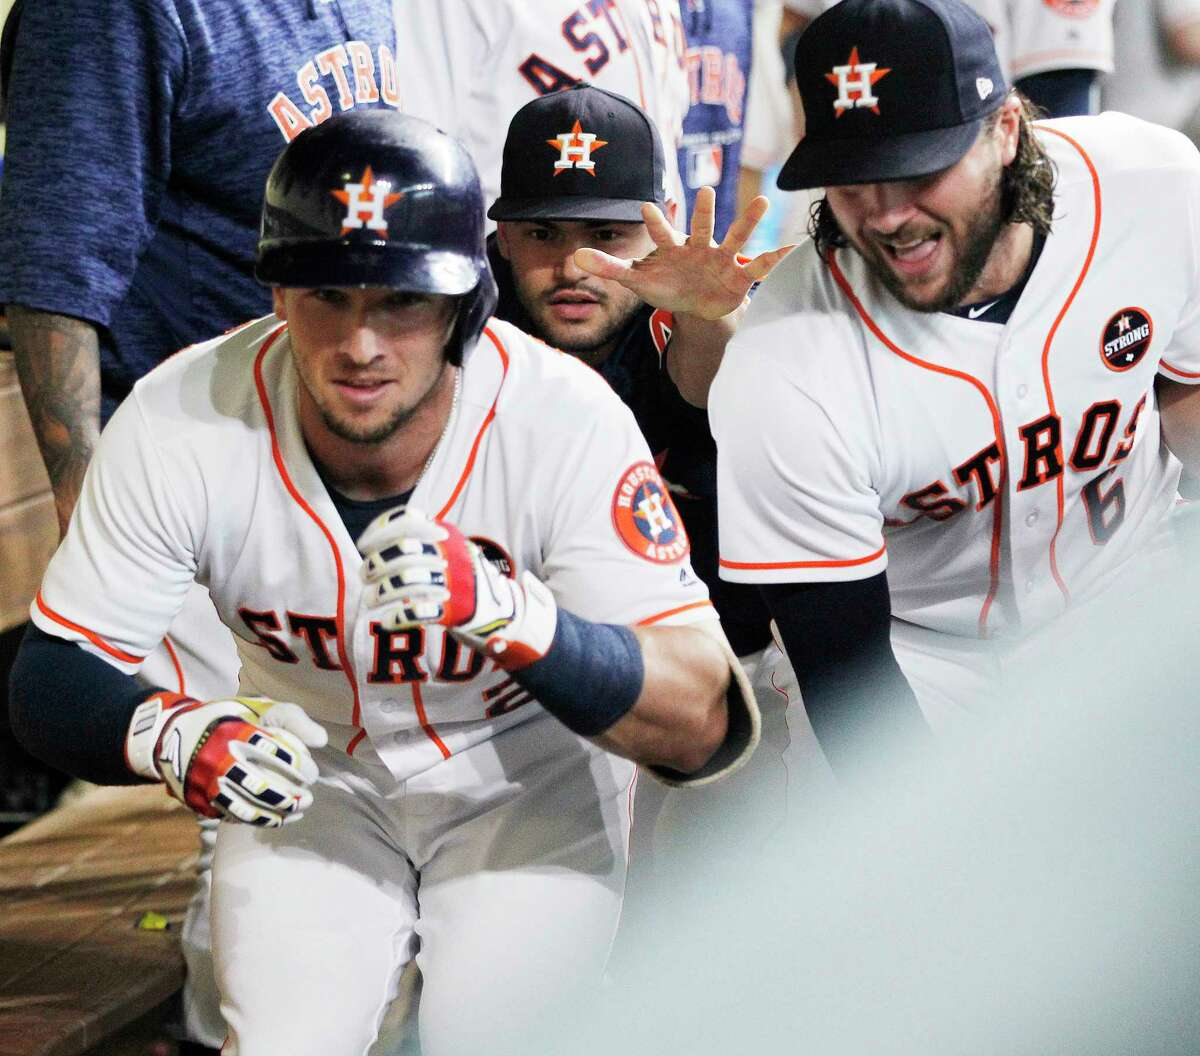 Houston Astros third baseman Alex Bregman (2) along with Houston Astros center fielder Jake Marisnick (6) and Houston Astros starting pitcher Lance McCullers Jr. (43) celebrate his solo home run in the dugout against the Minnesota Twins at Minute Maid Park on Monday, Sept. 3, 2018 in Houston.